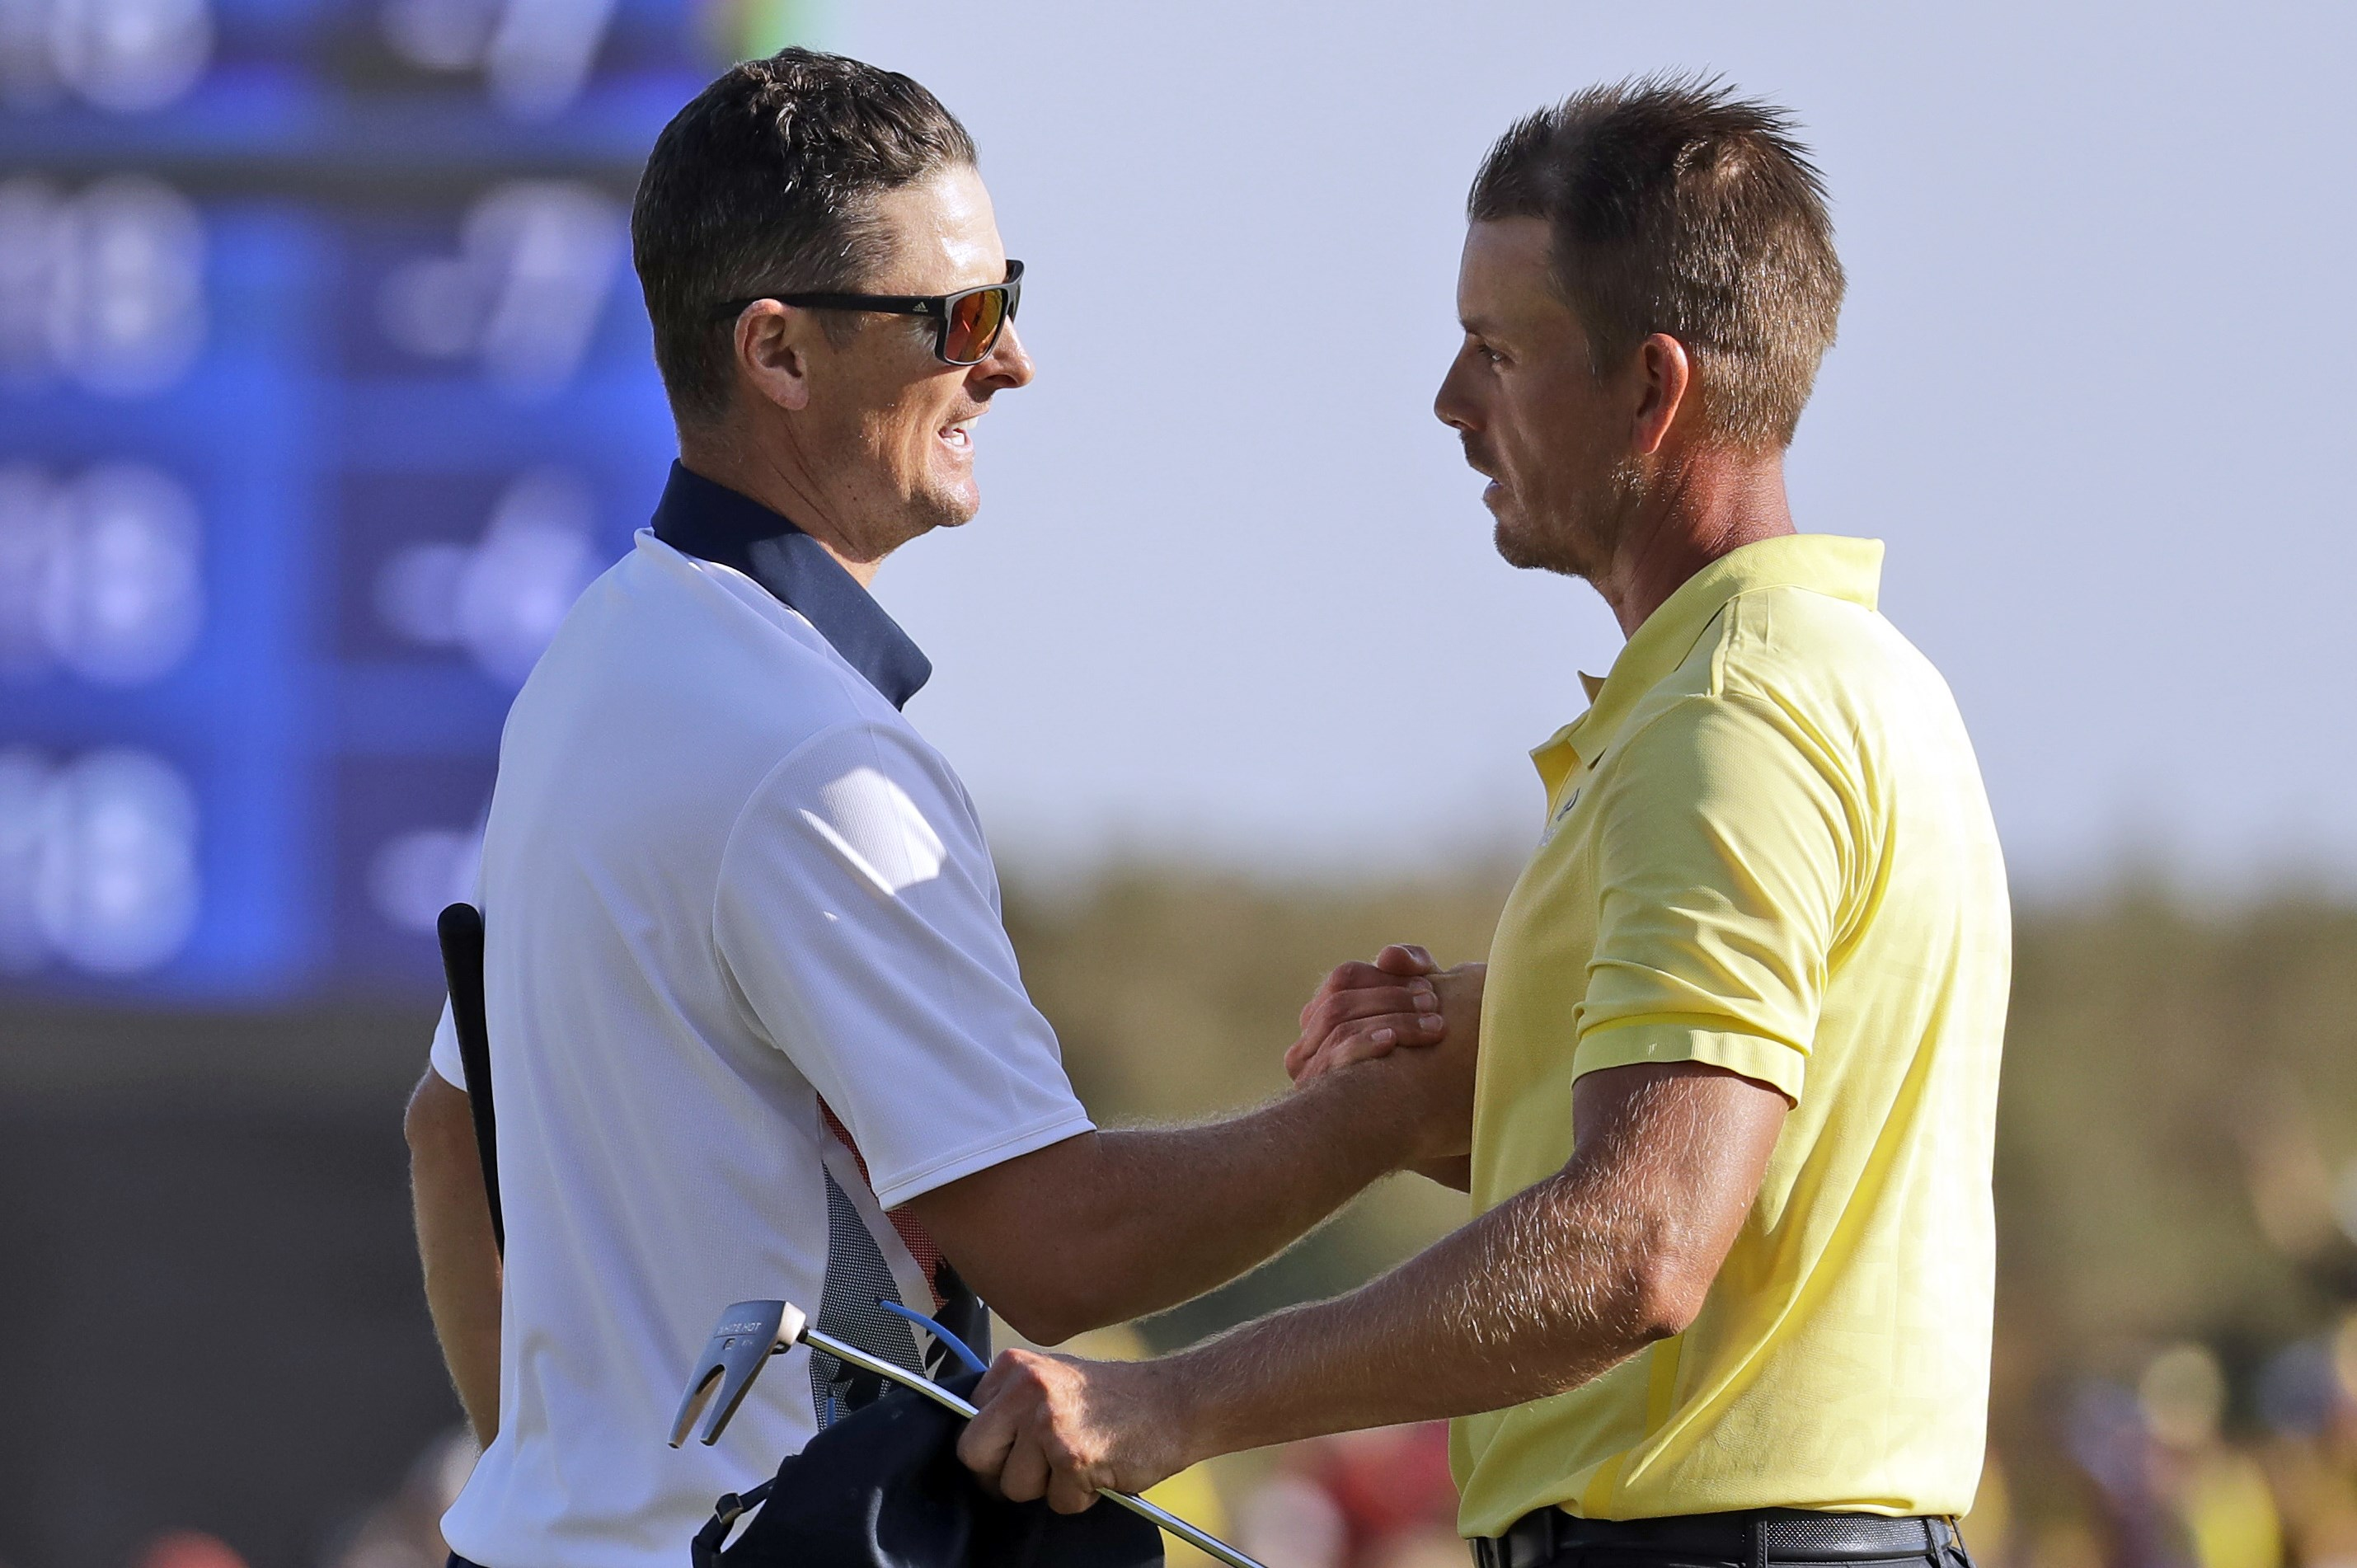 Justin Rose of Great Britain, left, and Henrik Stenson of Sweden, shake hands after Rose won gold and Stenson won silver during the final round of the men's golf event at the 2016 Summer Olympics in Rio de Janeiro, Brazil, Sunday, Aug. 14, 2016. (AP Photo